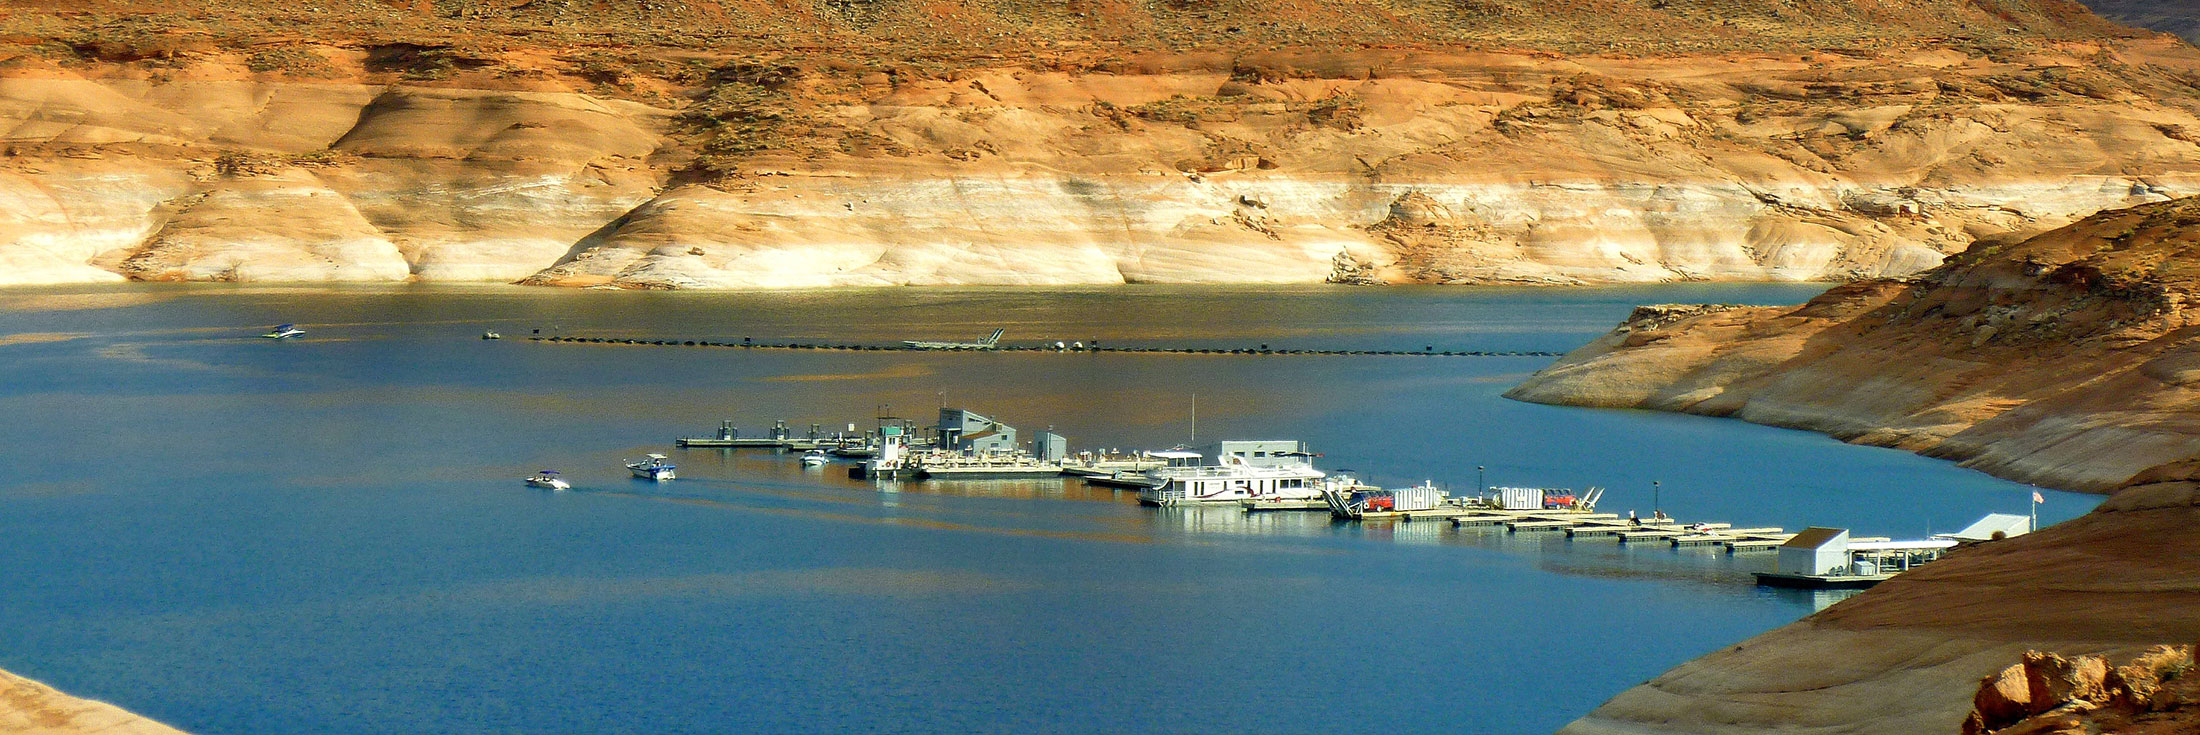 Dangling Rope Marina Lake Powell 2200X735